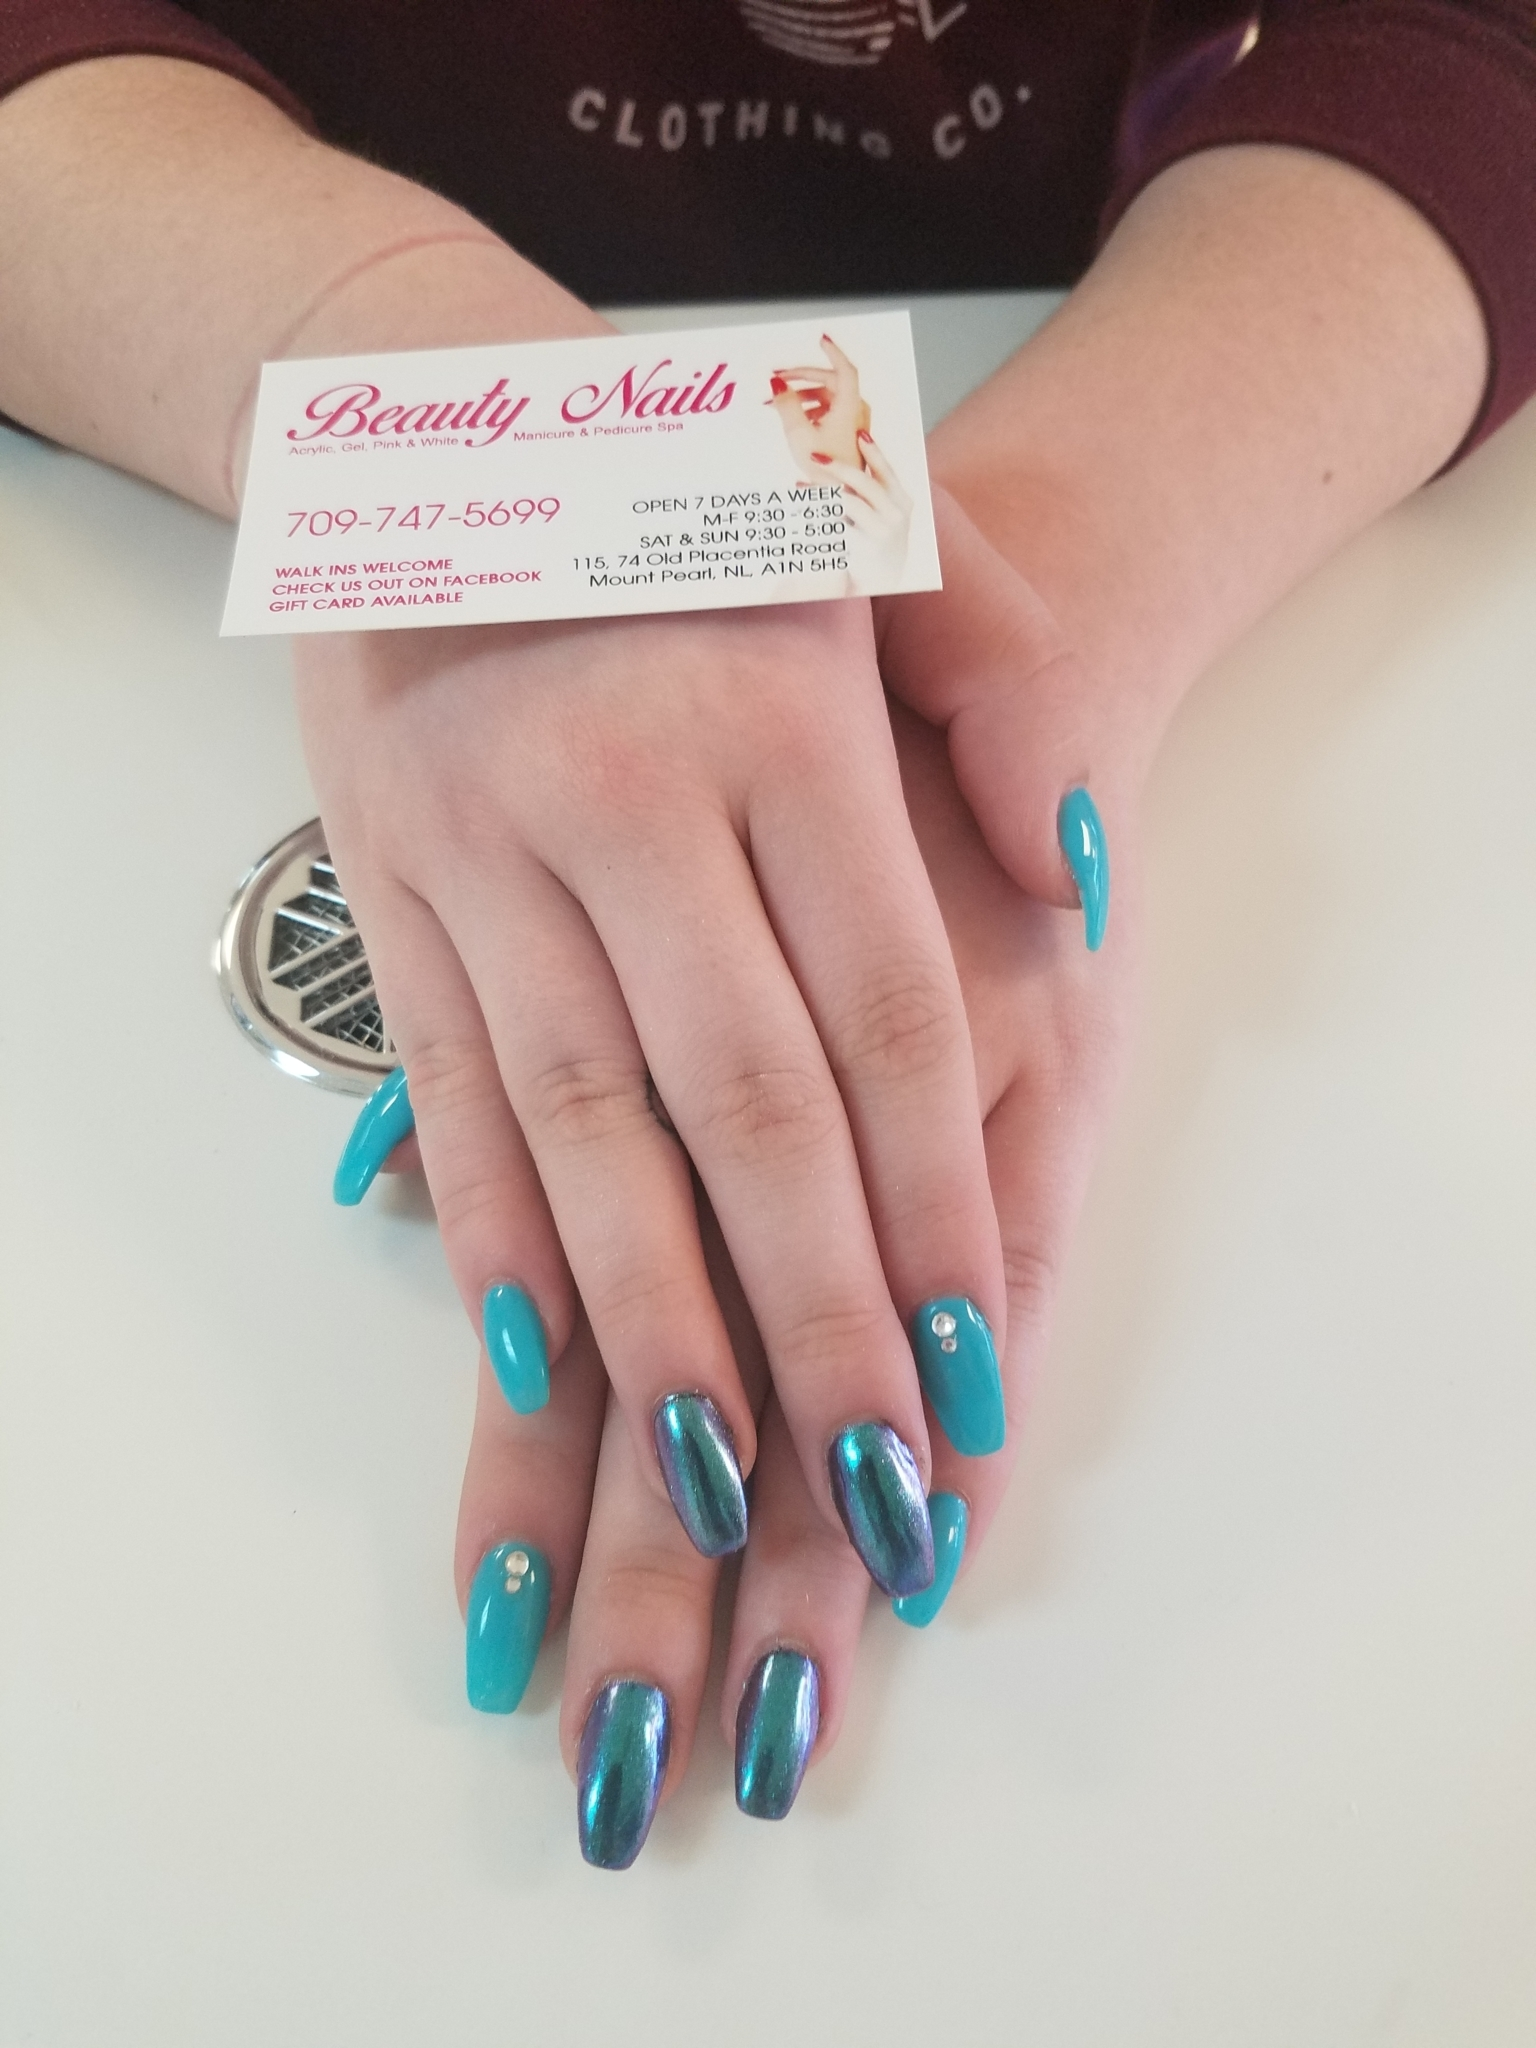 Beauty Nails in Mount Pearl